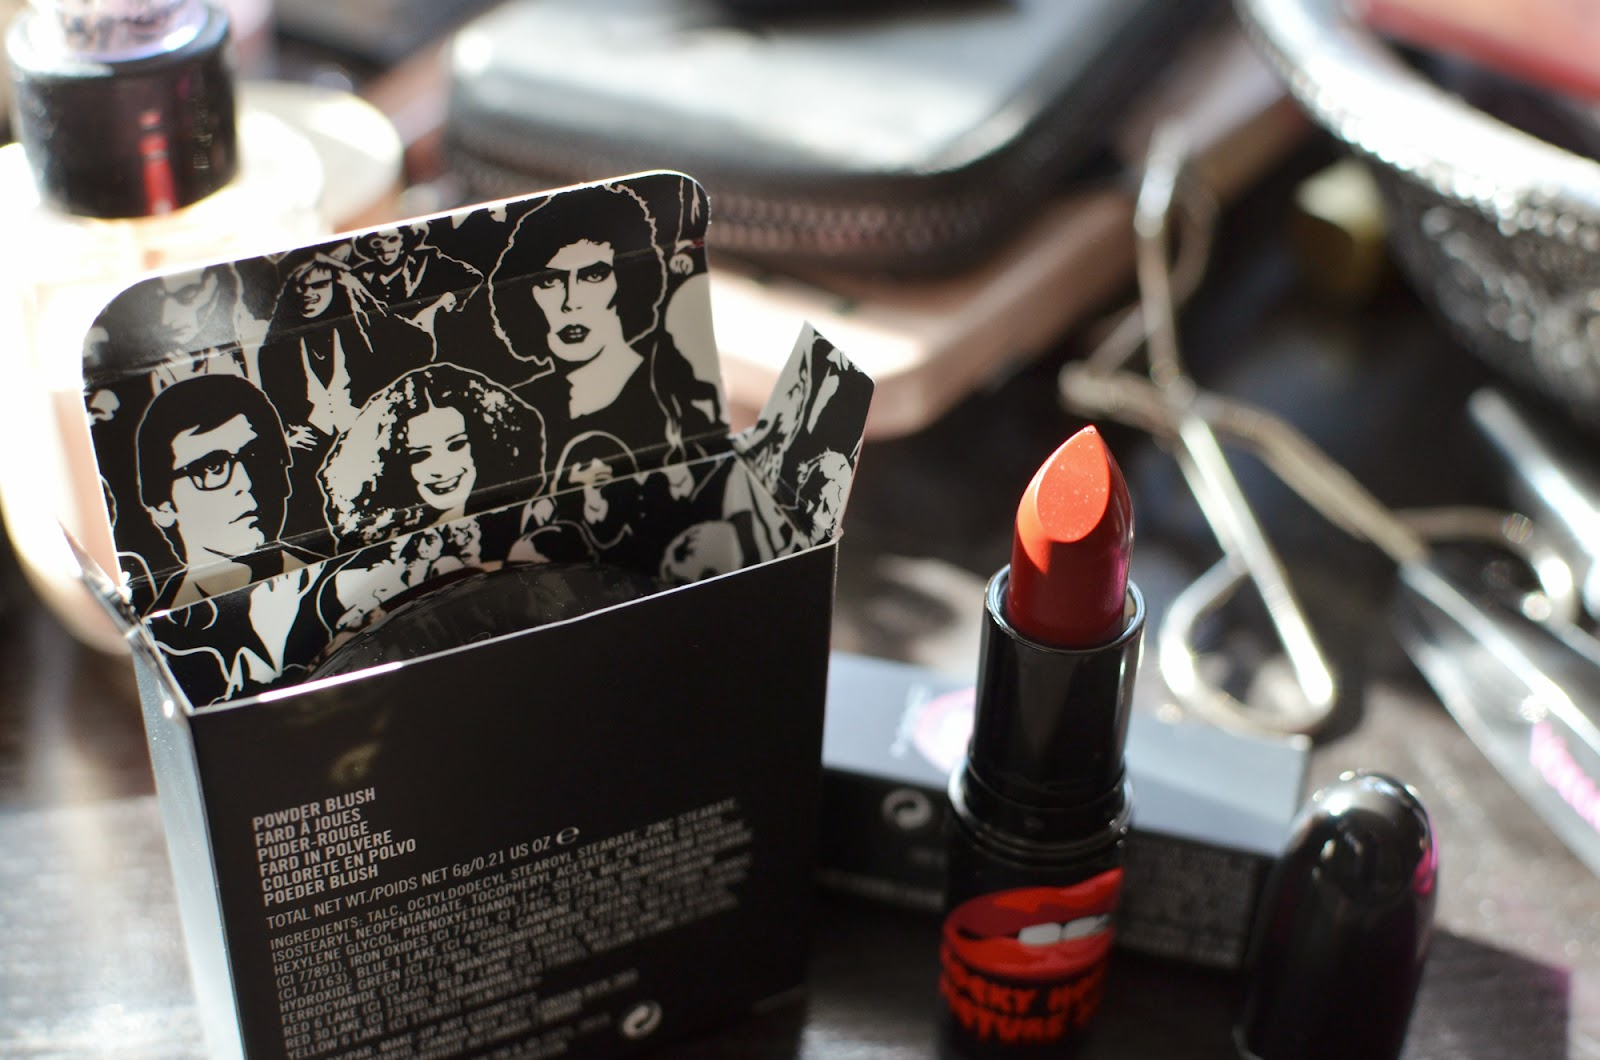 Frank-n-Furter lipstick from MAC Rocky Horror collection